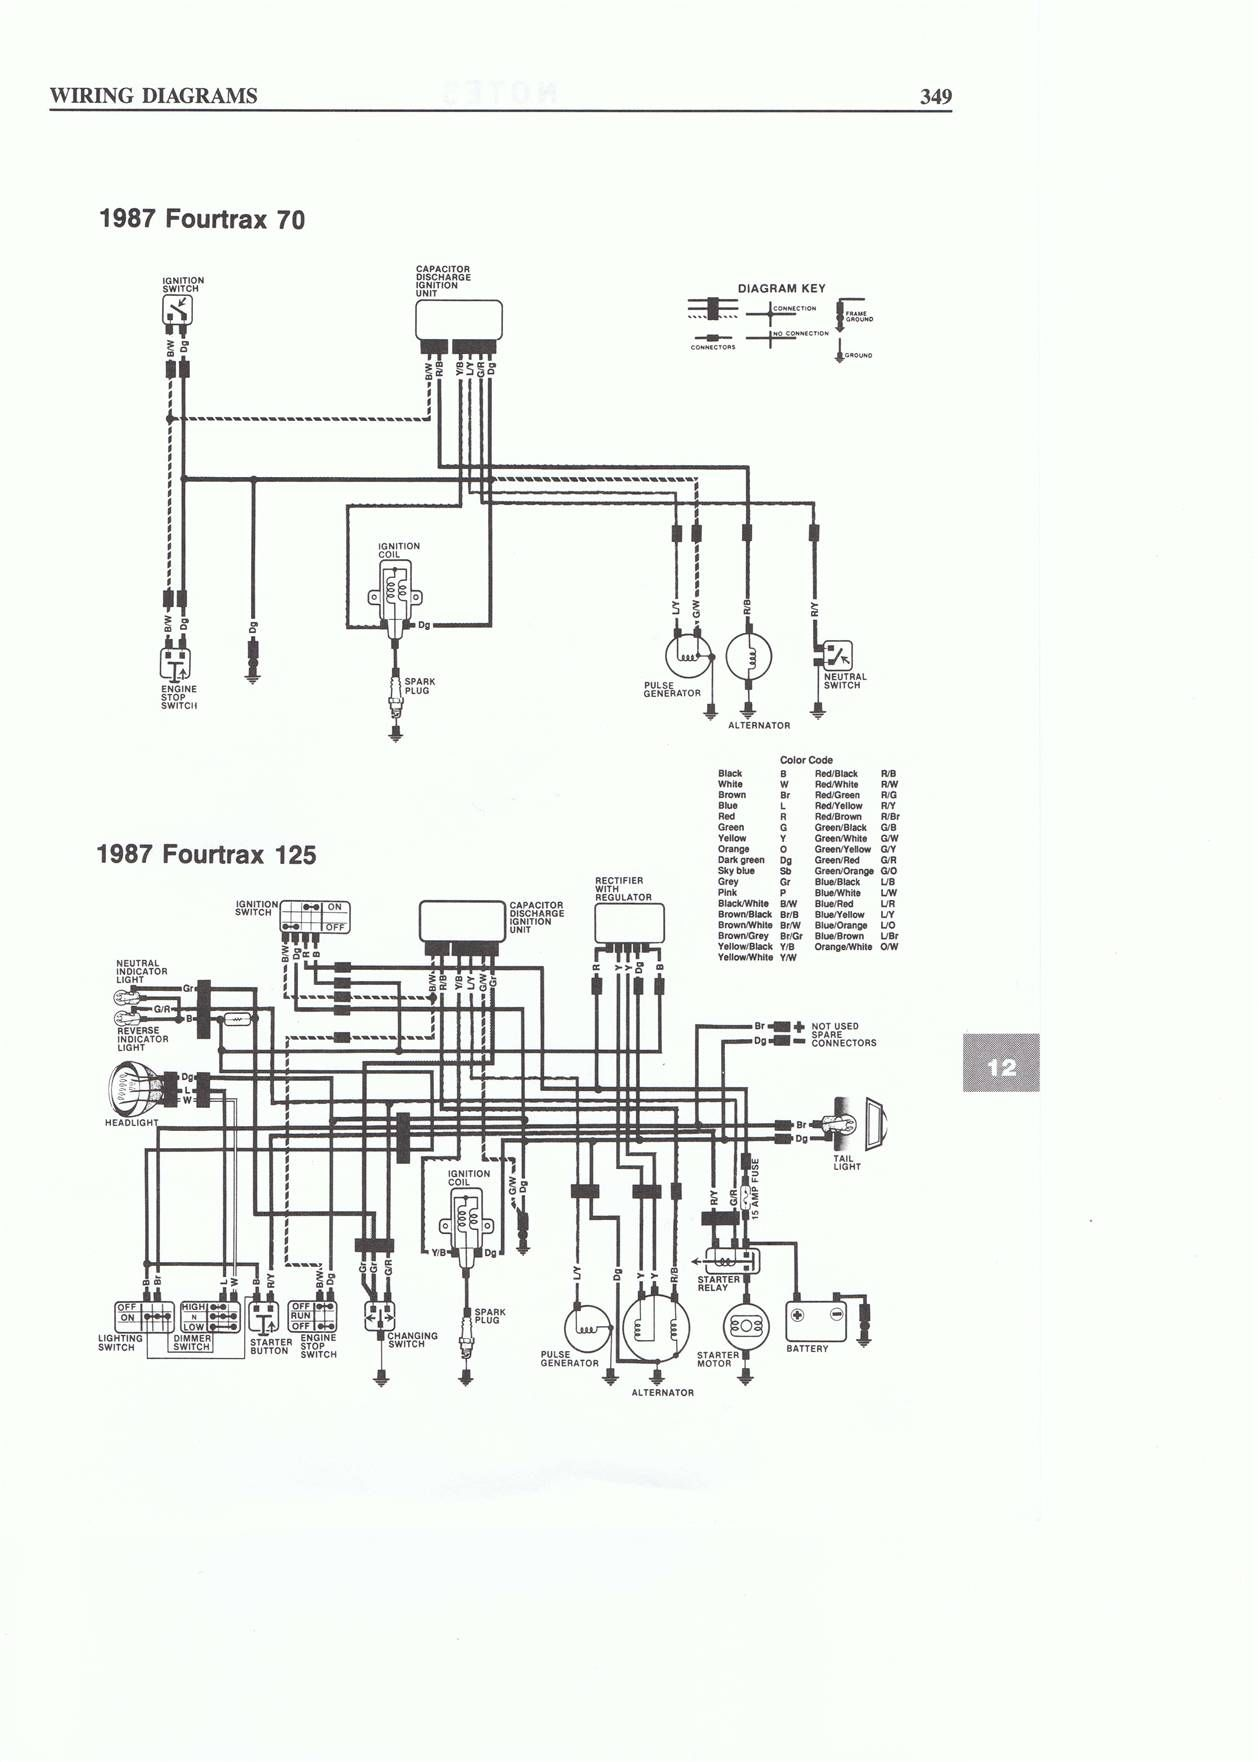 small resolution of craftsman gt5000 wiring diagram wiring diagram specialtiescraftsman gt5000 wiring diagram best wiring librarycraftsman gt5000 wiring diagram